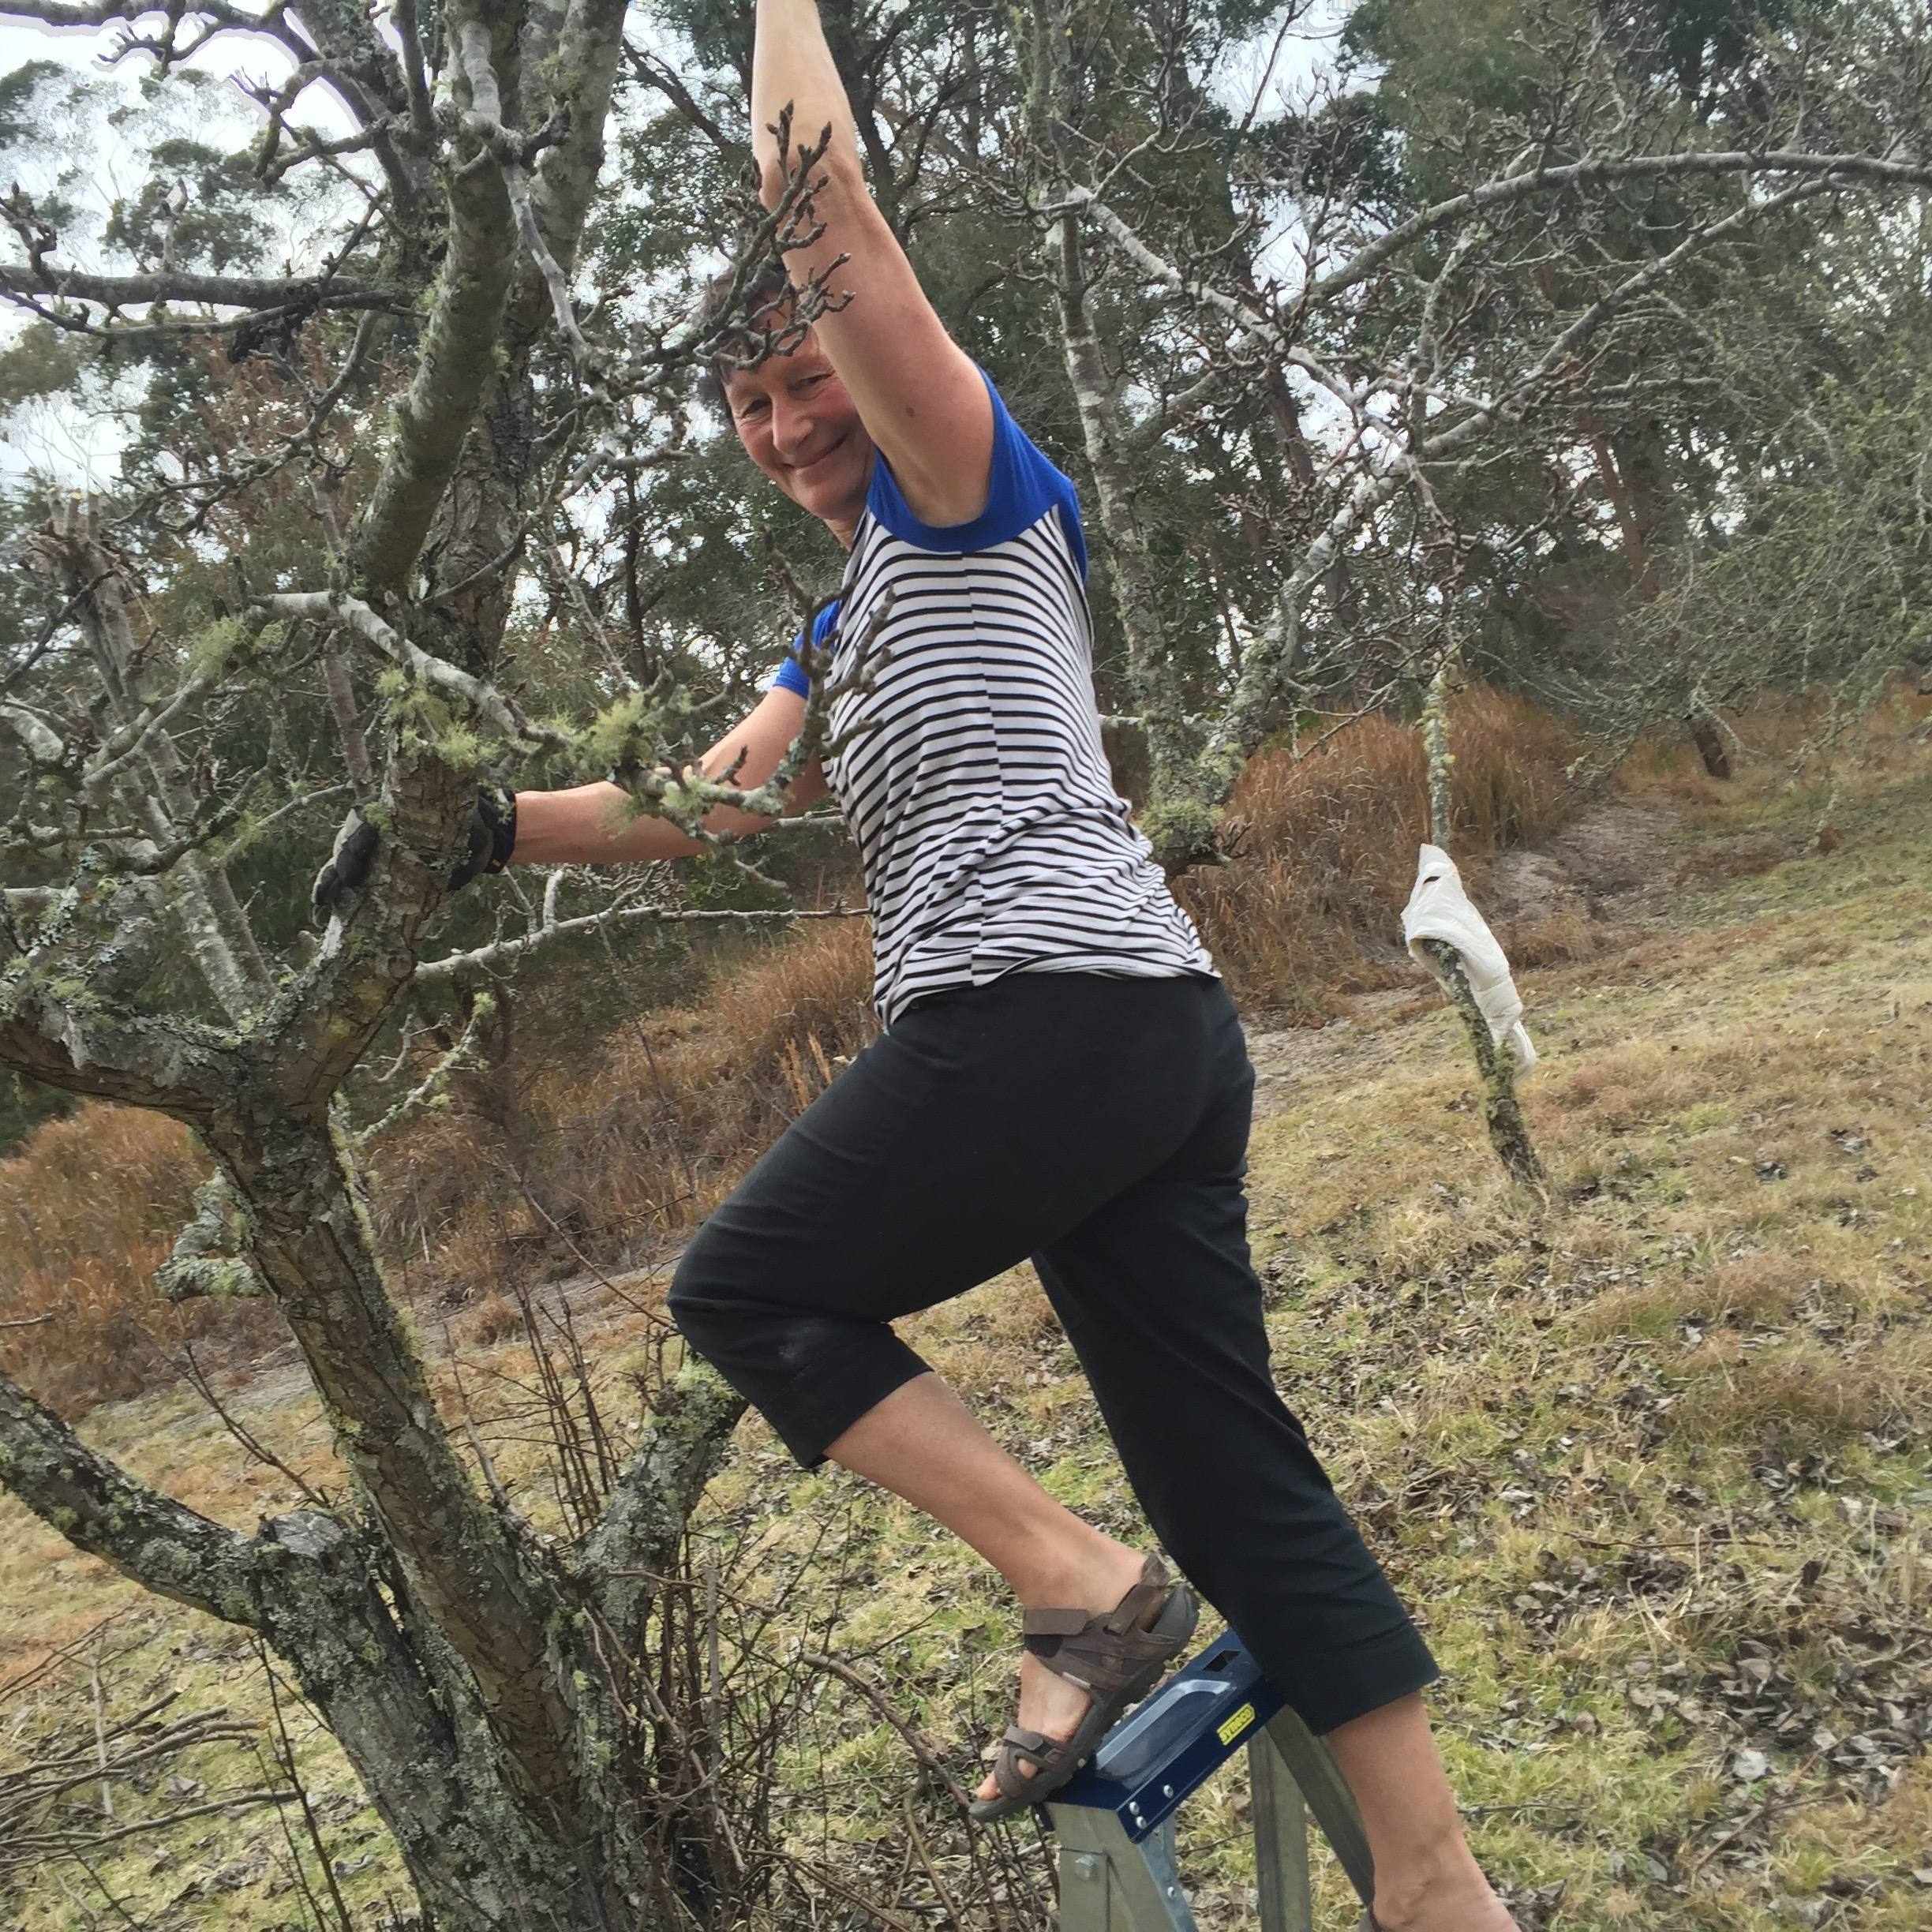 Myriam pruning the nashi pears in the orchard